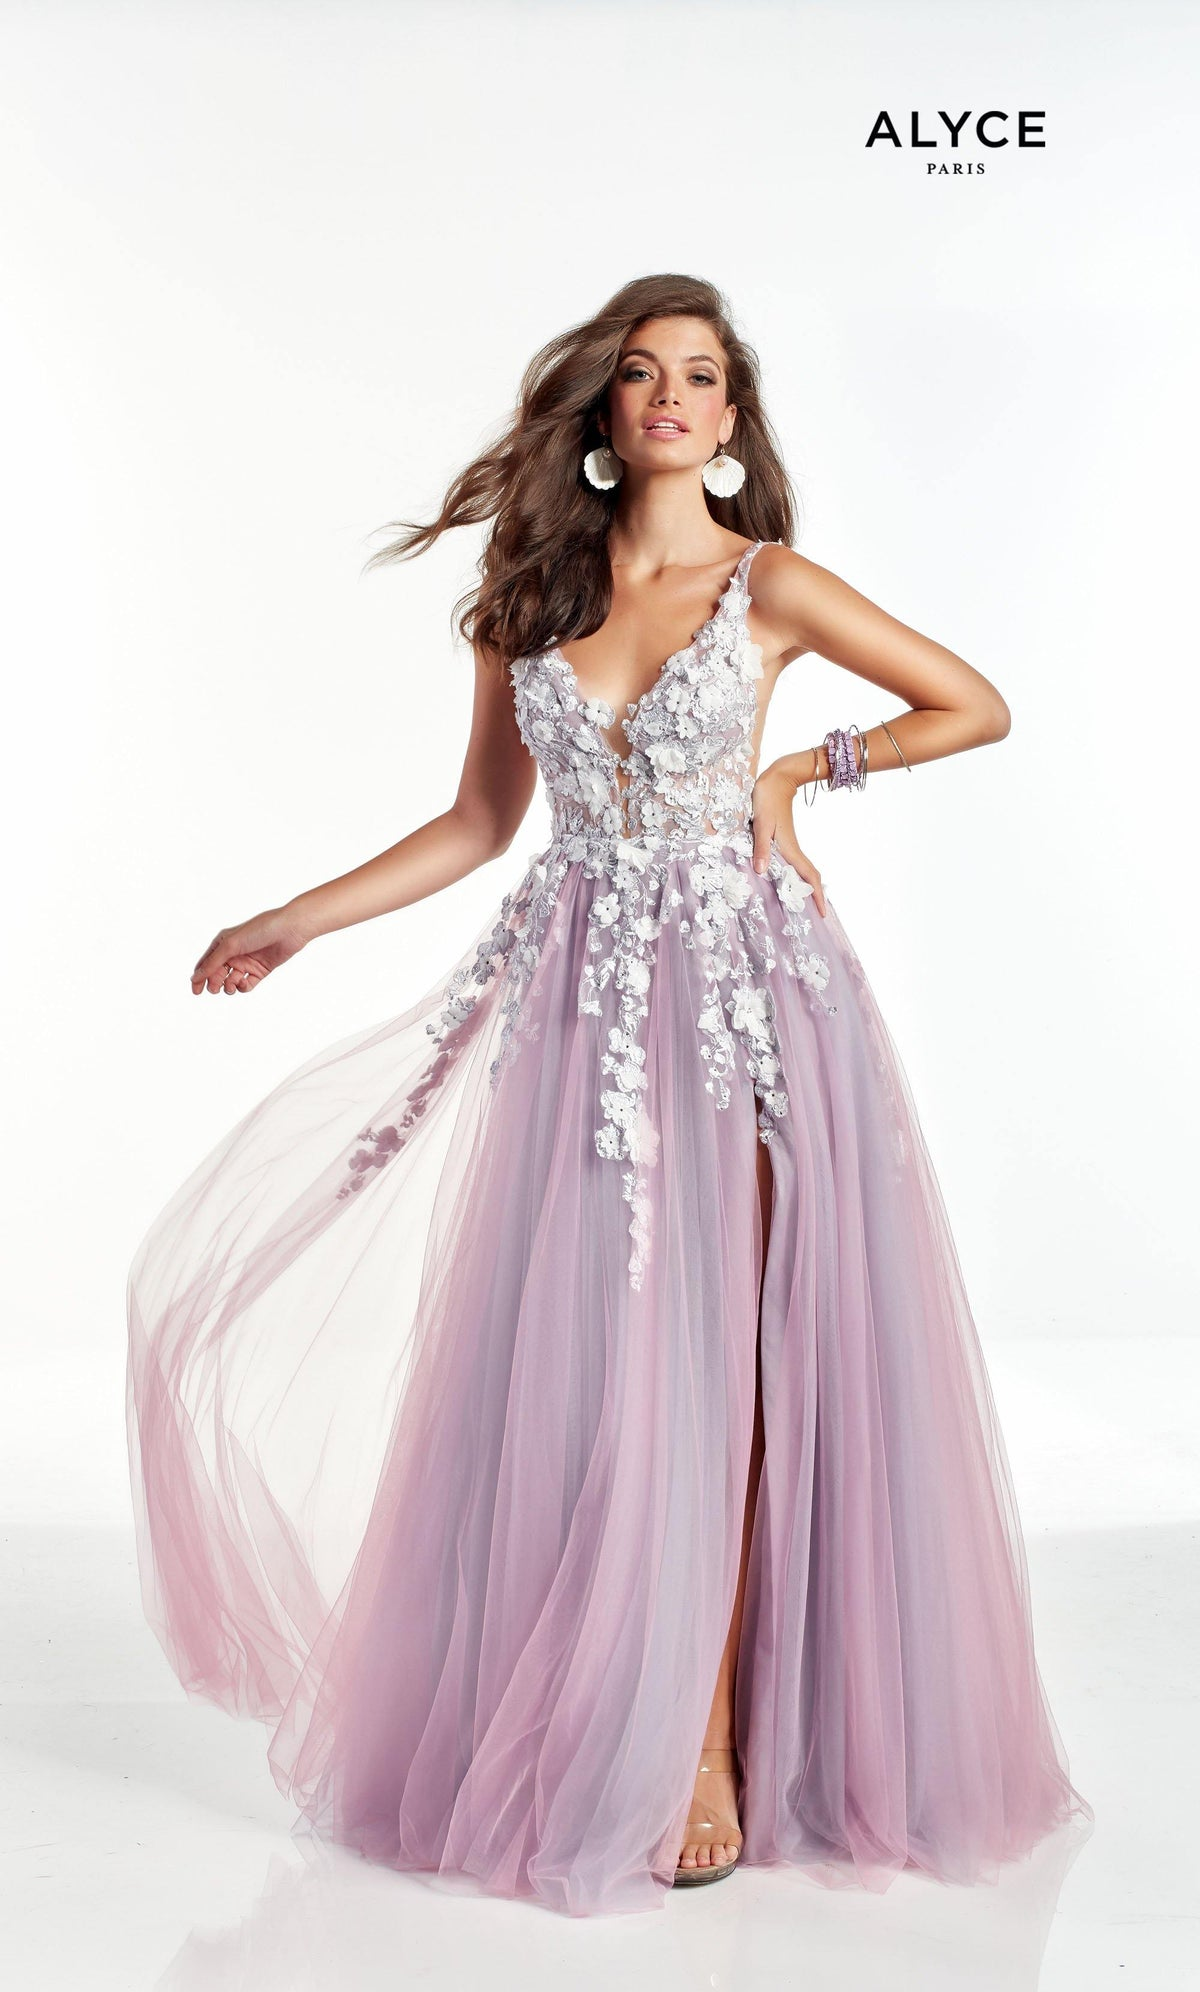 Two tone Pink and Blue tulle formal dress with a keyhole back style, 3D floral embroidery, and train